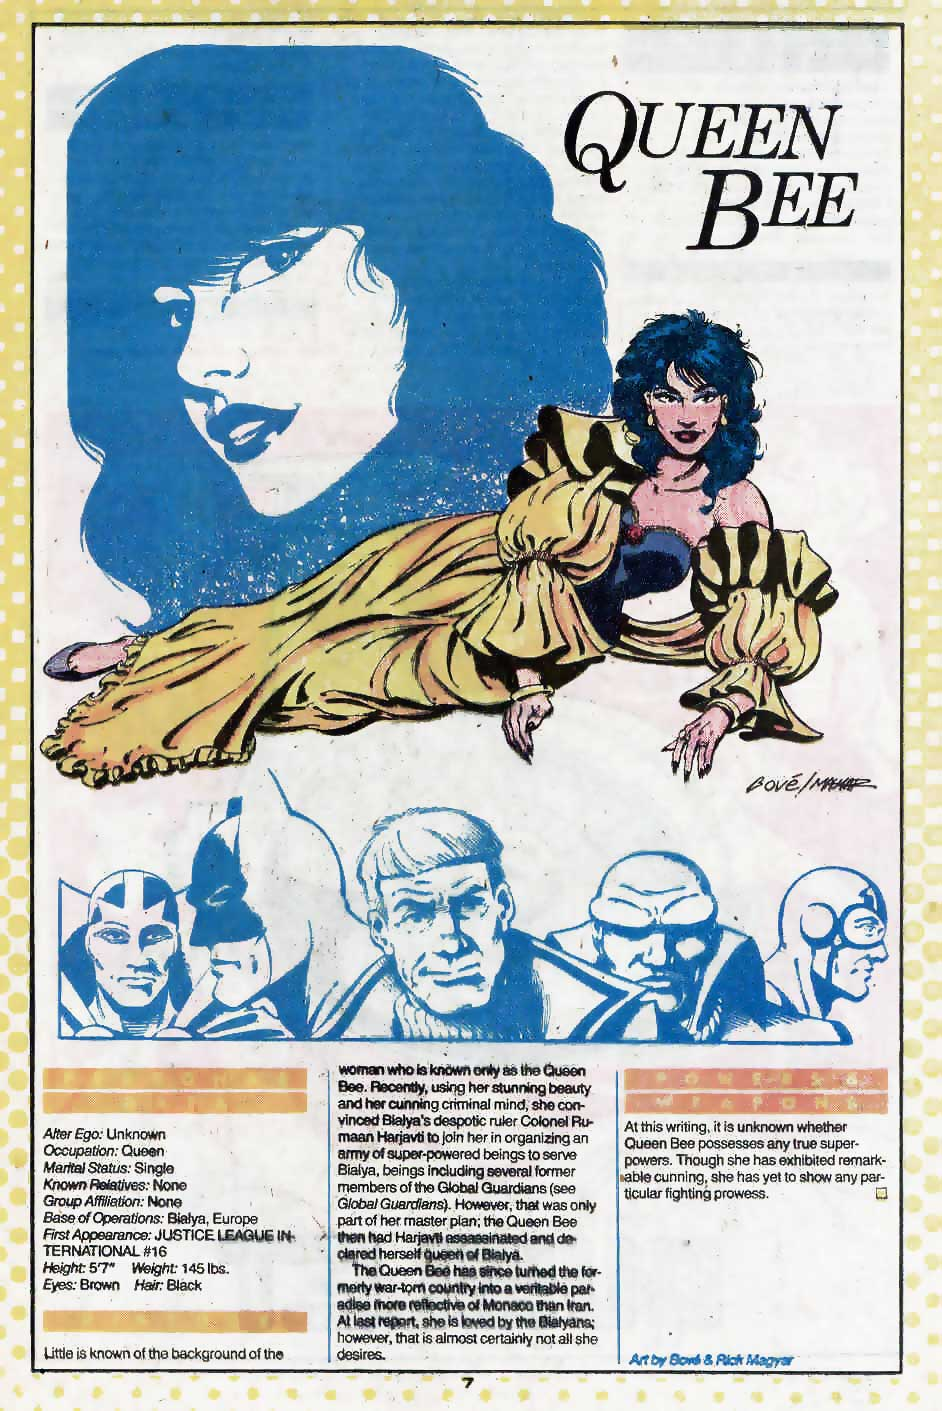 Who's Who Update 88 #3 Queen Bee by Bove and Rick Magyar